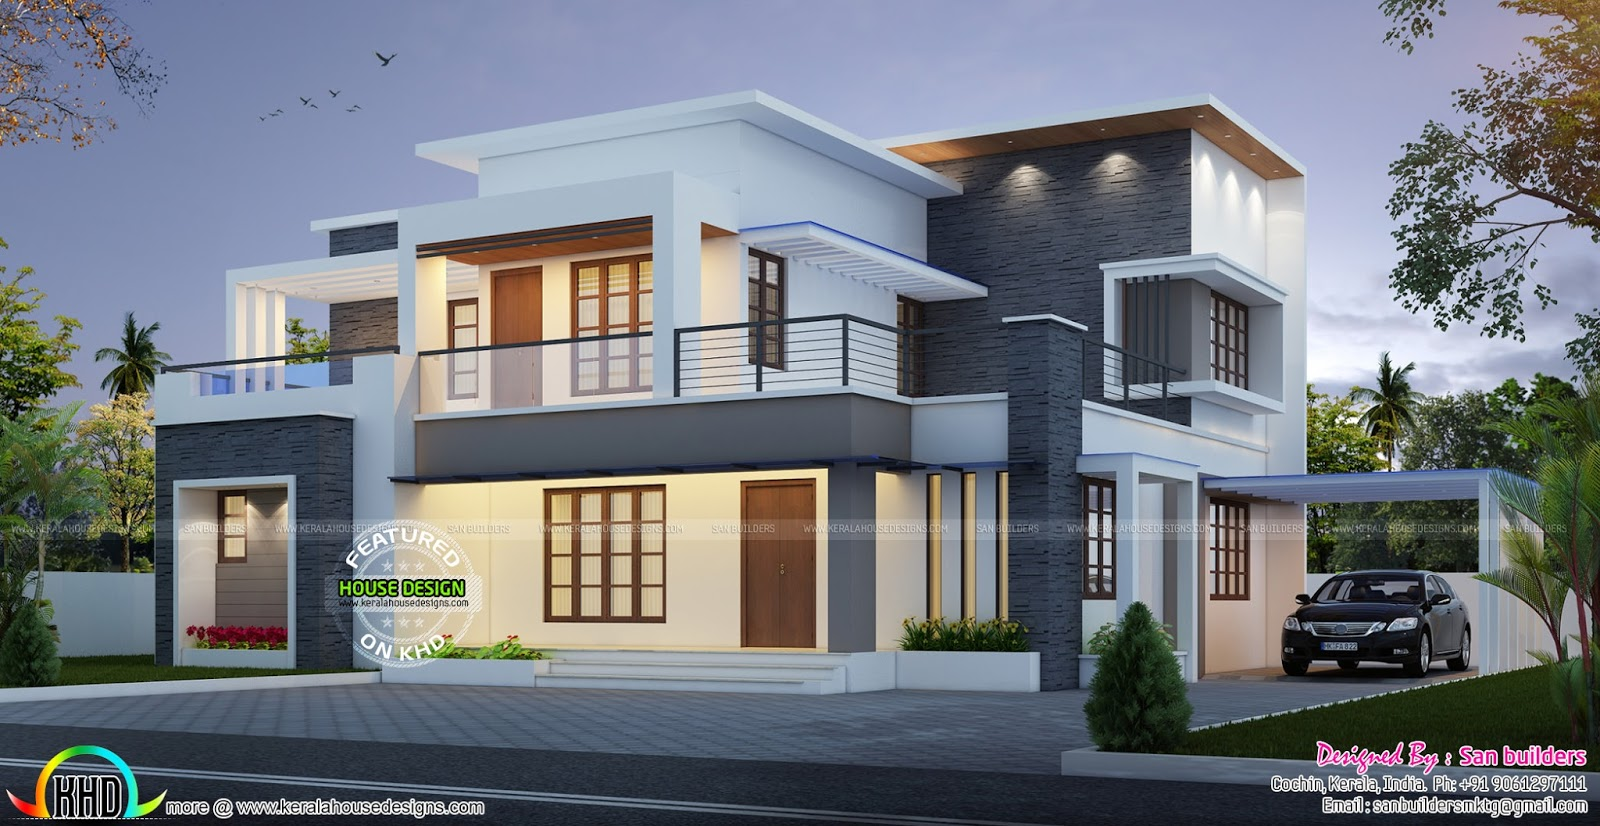 House plan and elevation by san builders kerala home for Kerala house designs and floor plans 2016